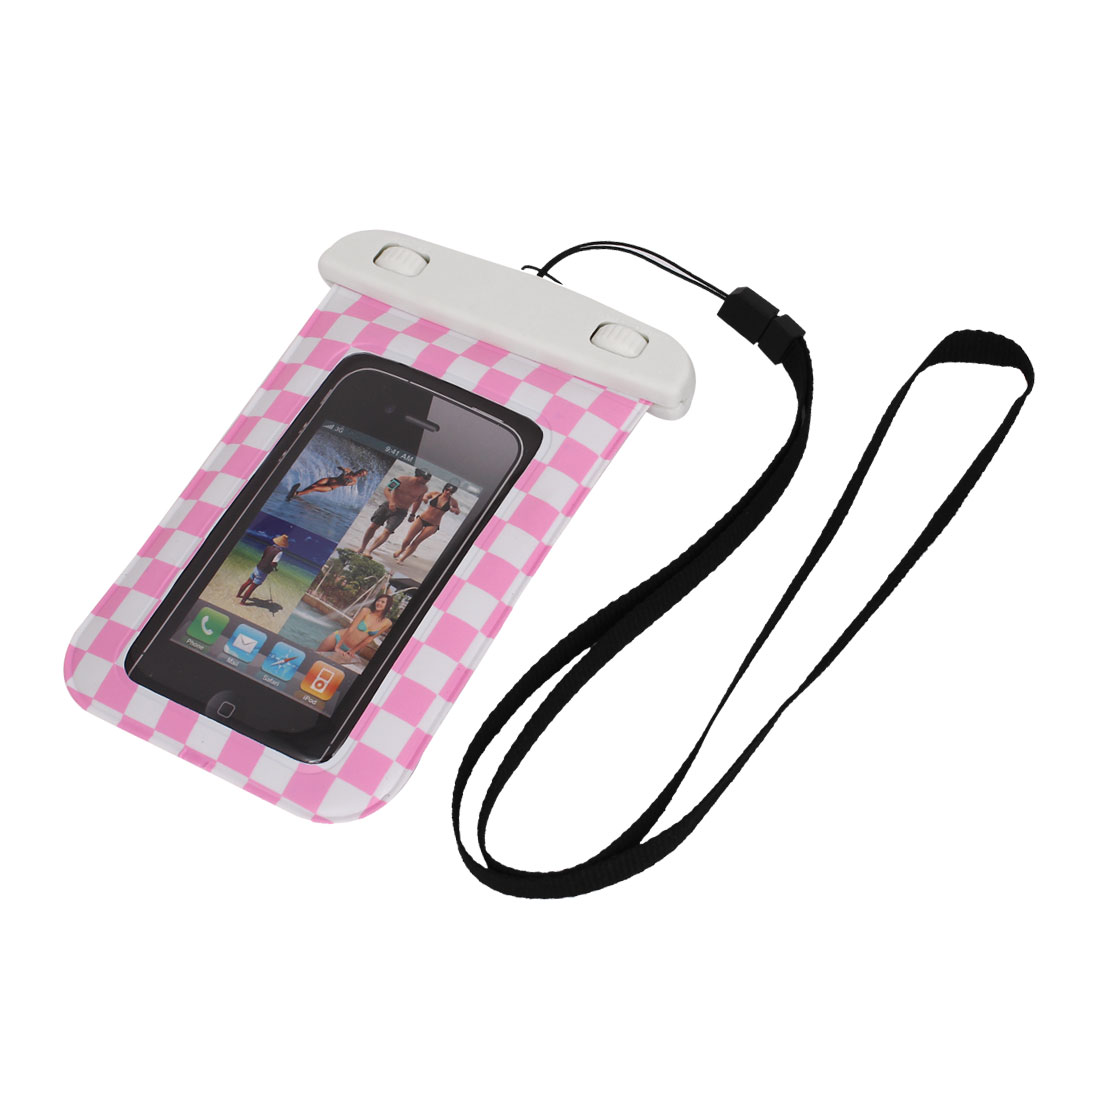 "Grid Pattern Waterproof Case Dry Bag Cover Pouch Holder Pink for 4"" Cell Phone"